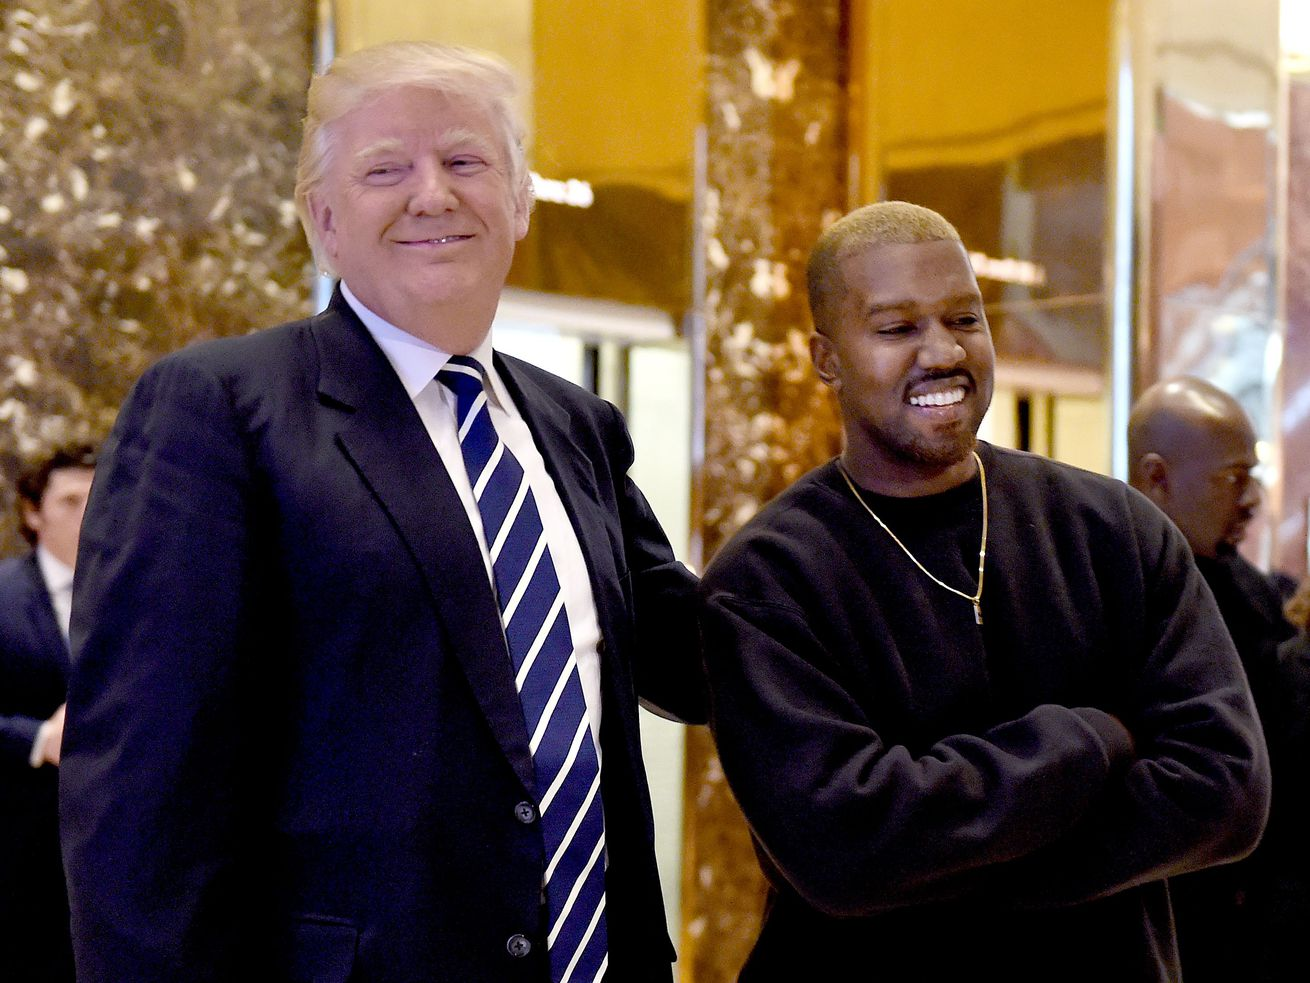 Nearly two years after meeting with Donald Trump at Trump Tower, Kanye West is scheduled to meet with the president and Jared Kushner on October 11, 2018.